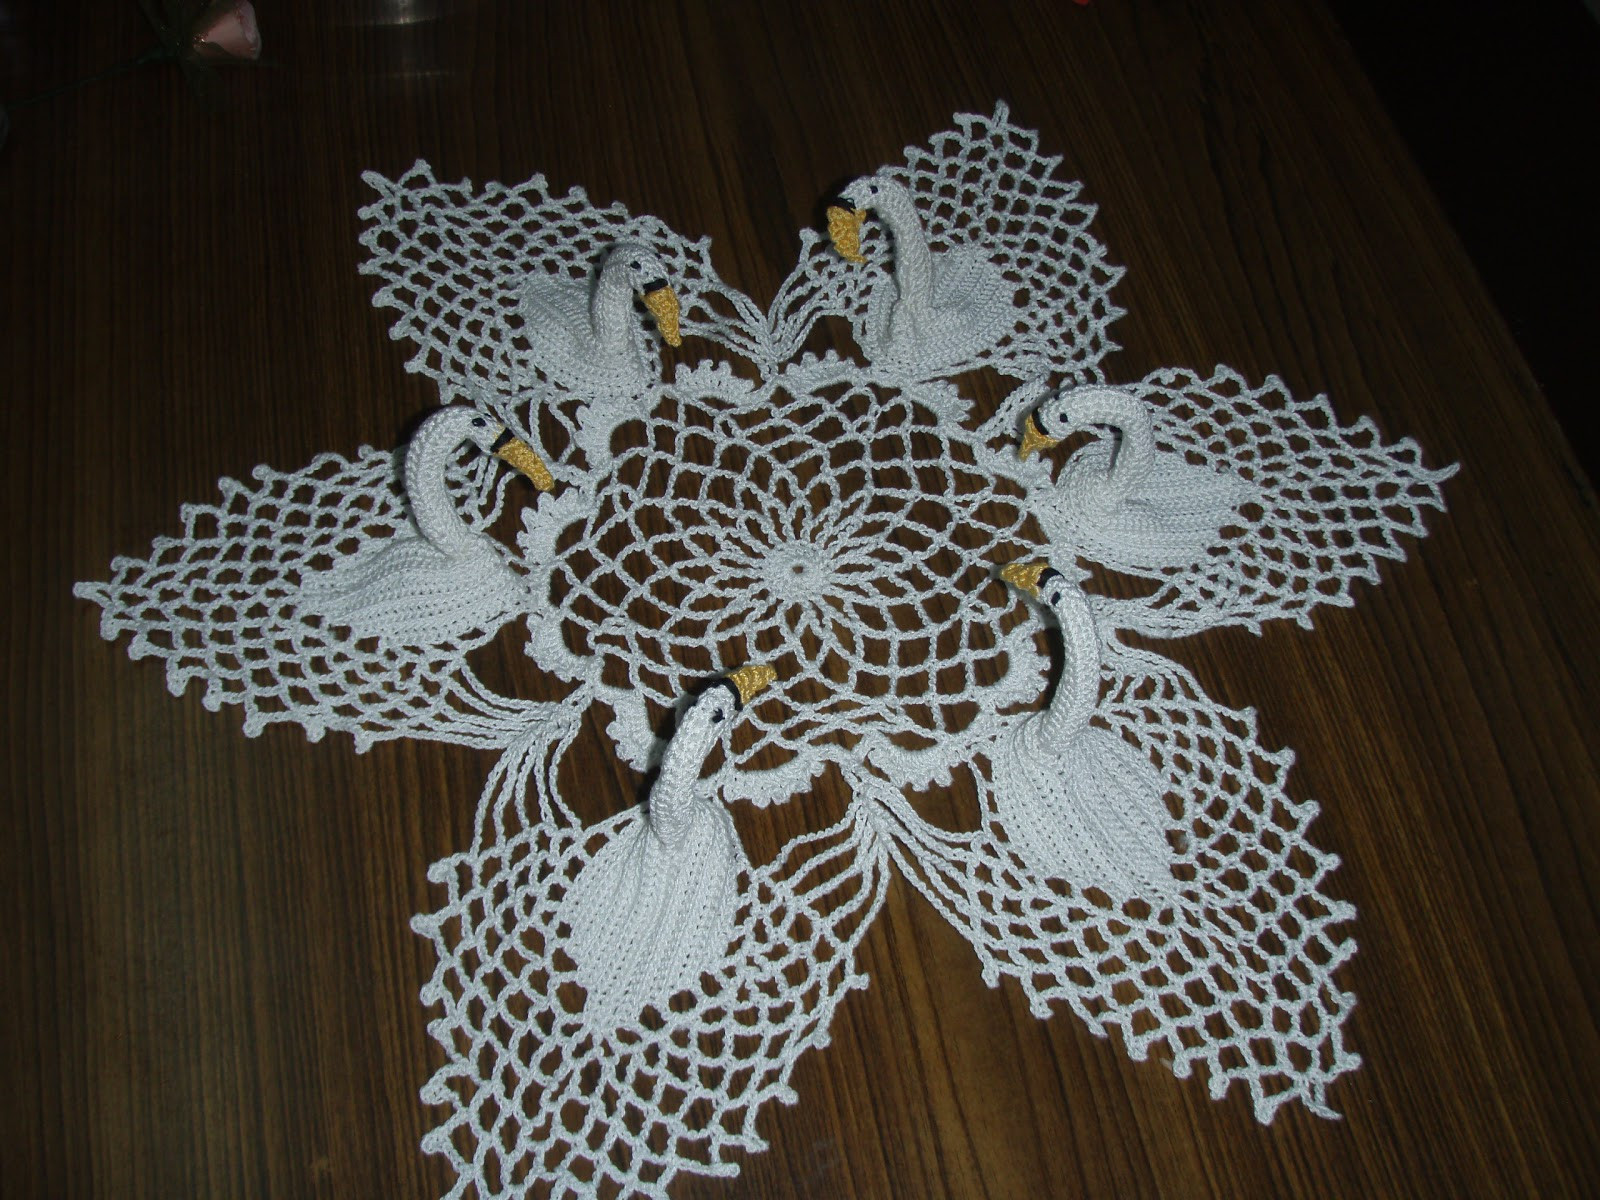 Free Doily Patterns New Crochet Heart Doily Pattern – Crochet Club Of Adorable 43 Pictures Free Doily Patterns